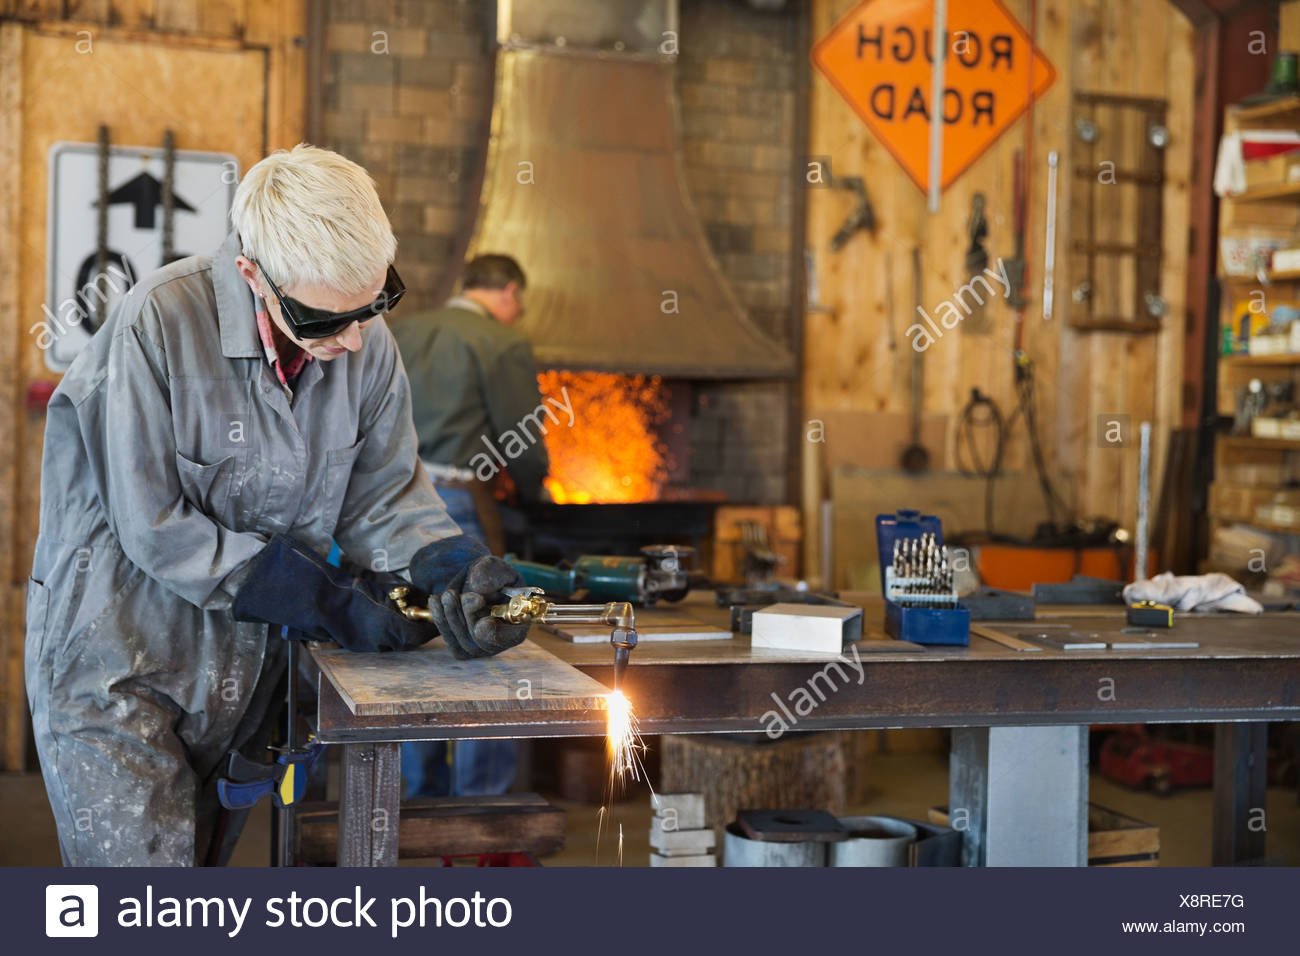 Female welder cutting metal with torch - Stock Image